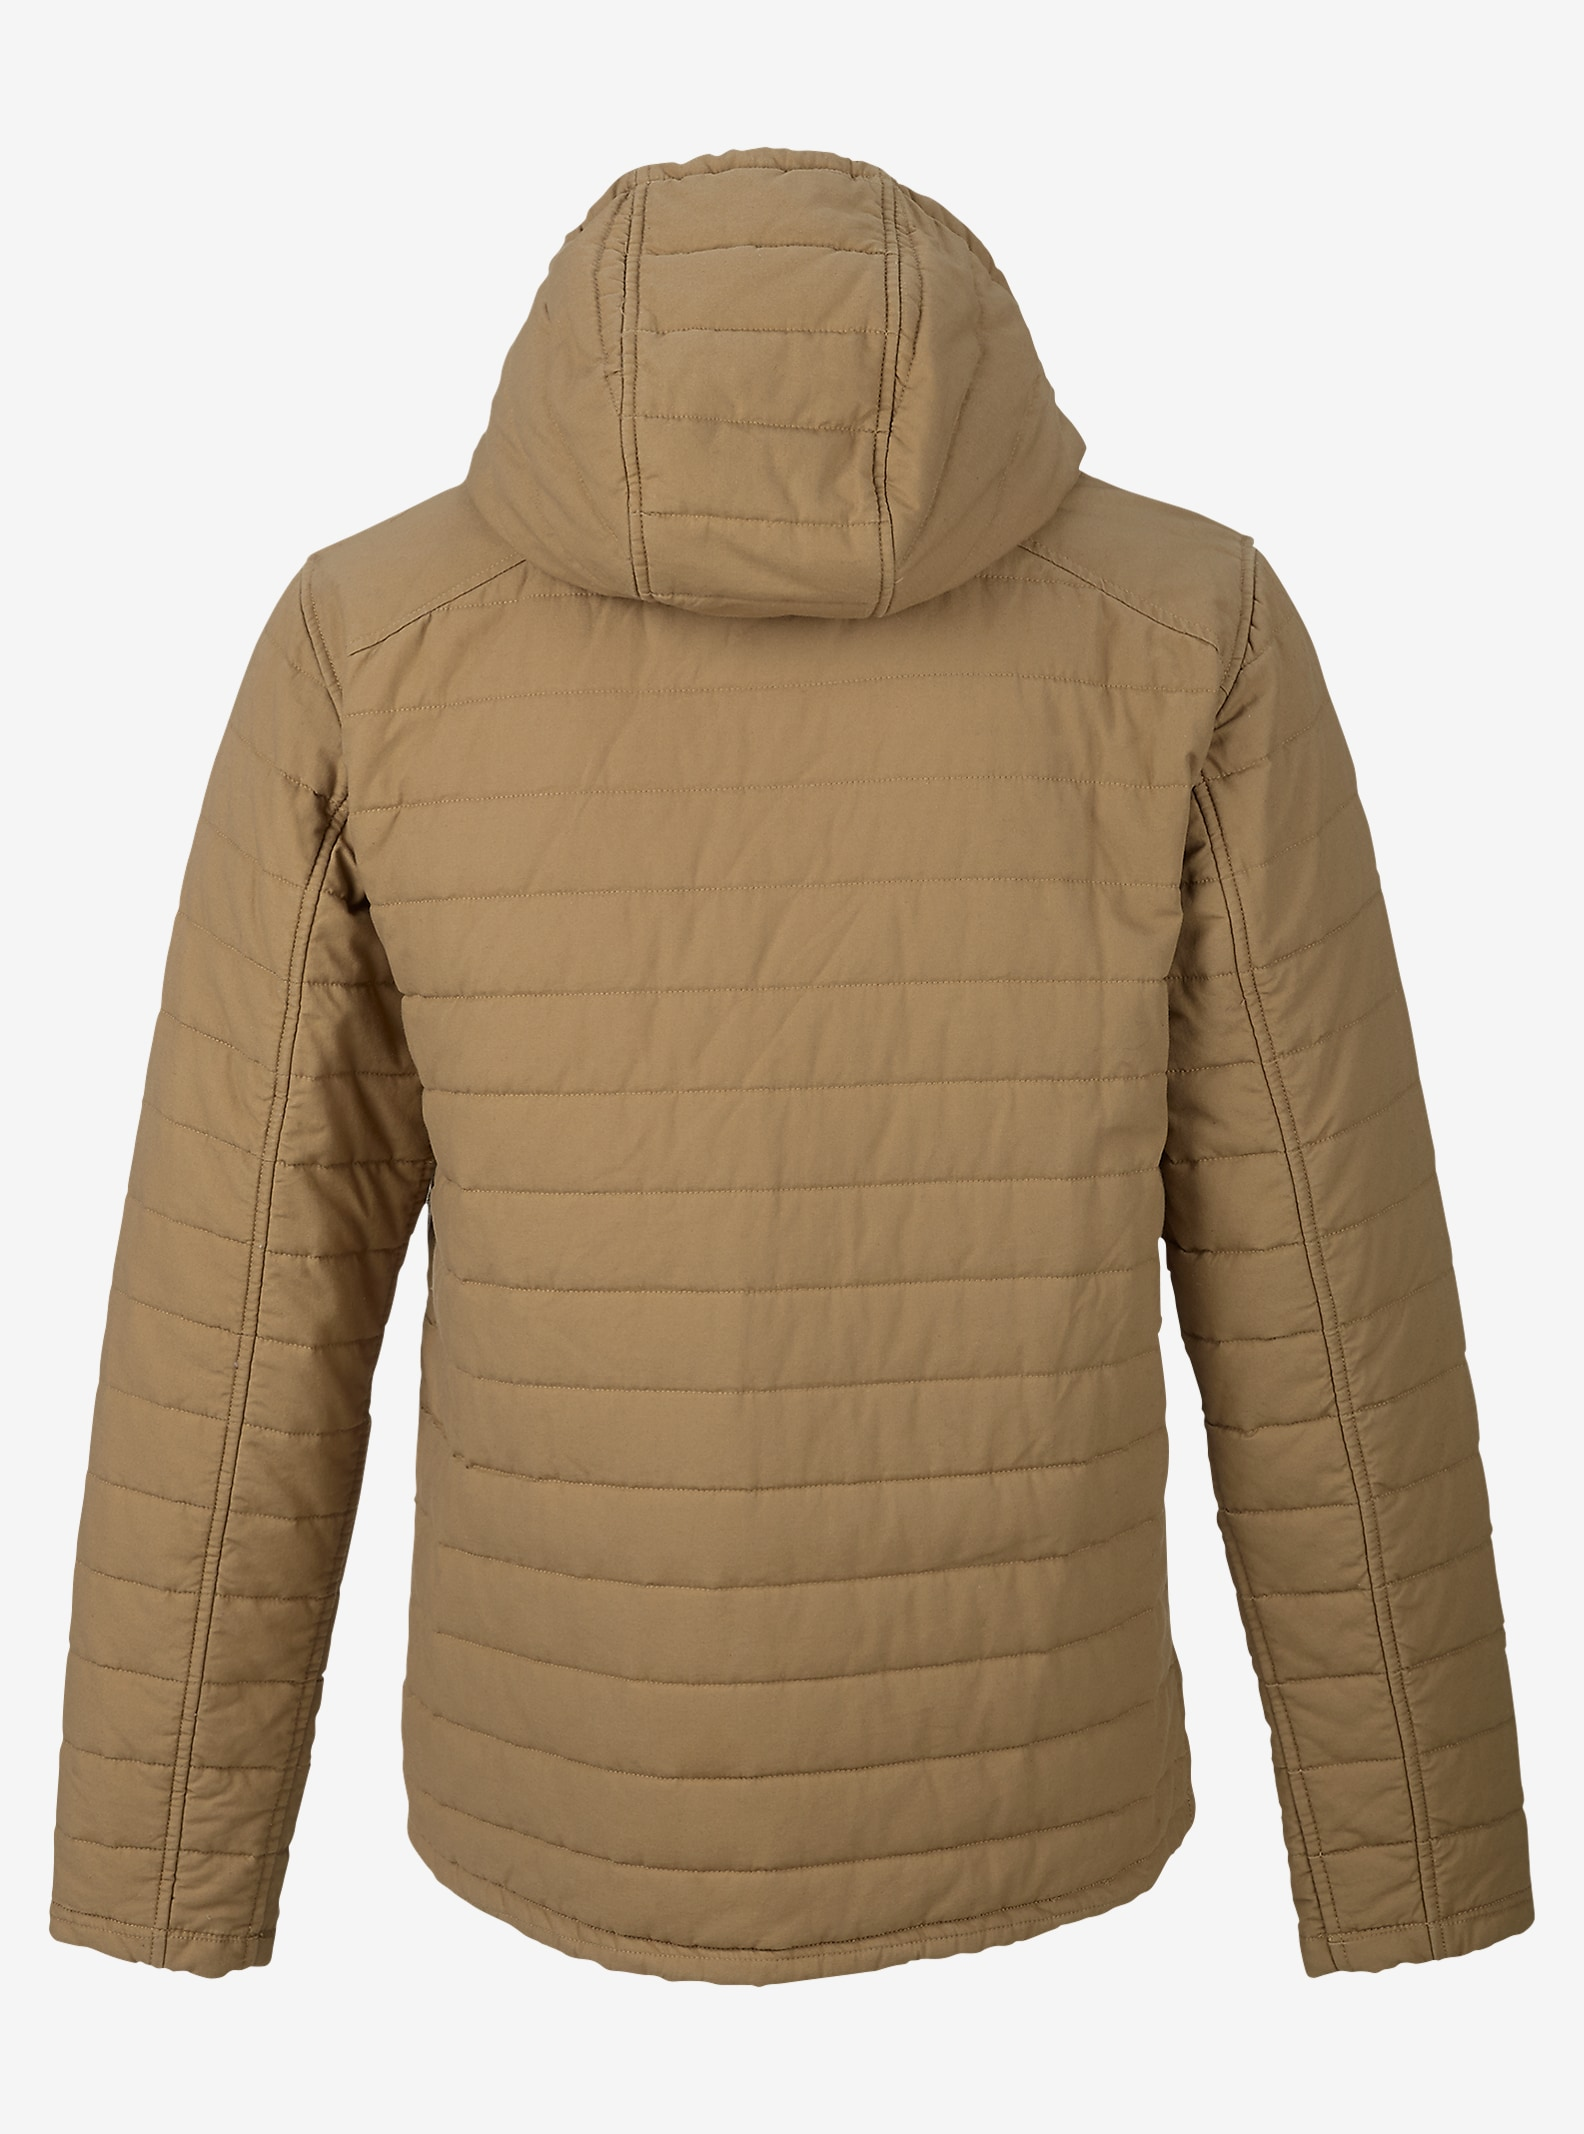 Burton Sylus Jacket shown in Kelp